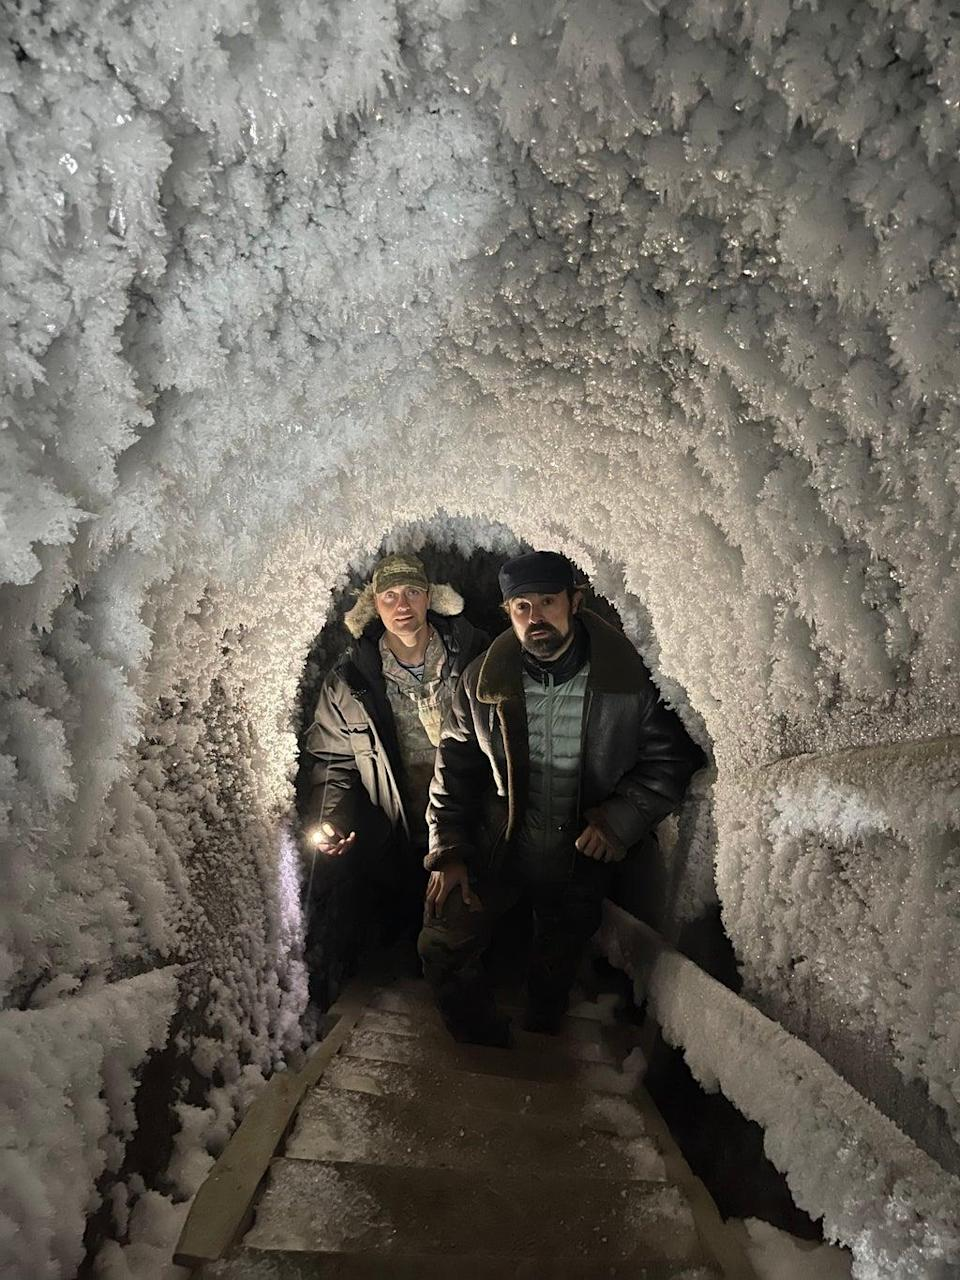 Nikita Zimov takes Evgeny Lebedev into an ice cave, tunnelling deep into the permafrost (Valentina Morriconi)